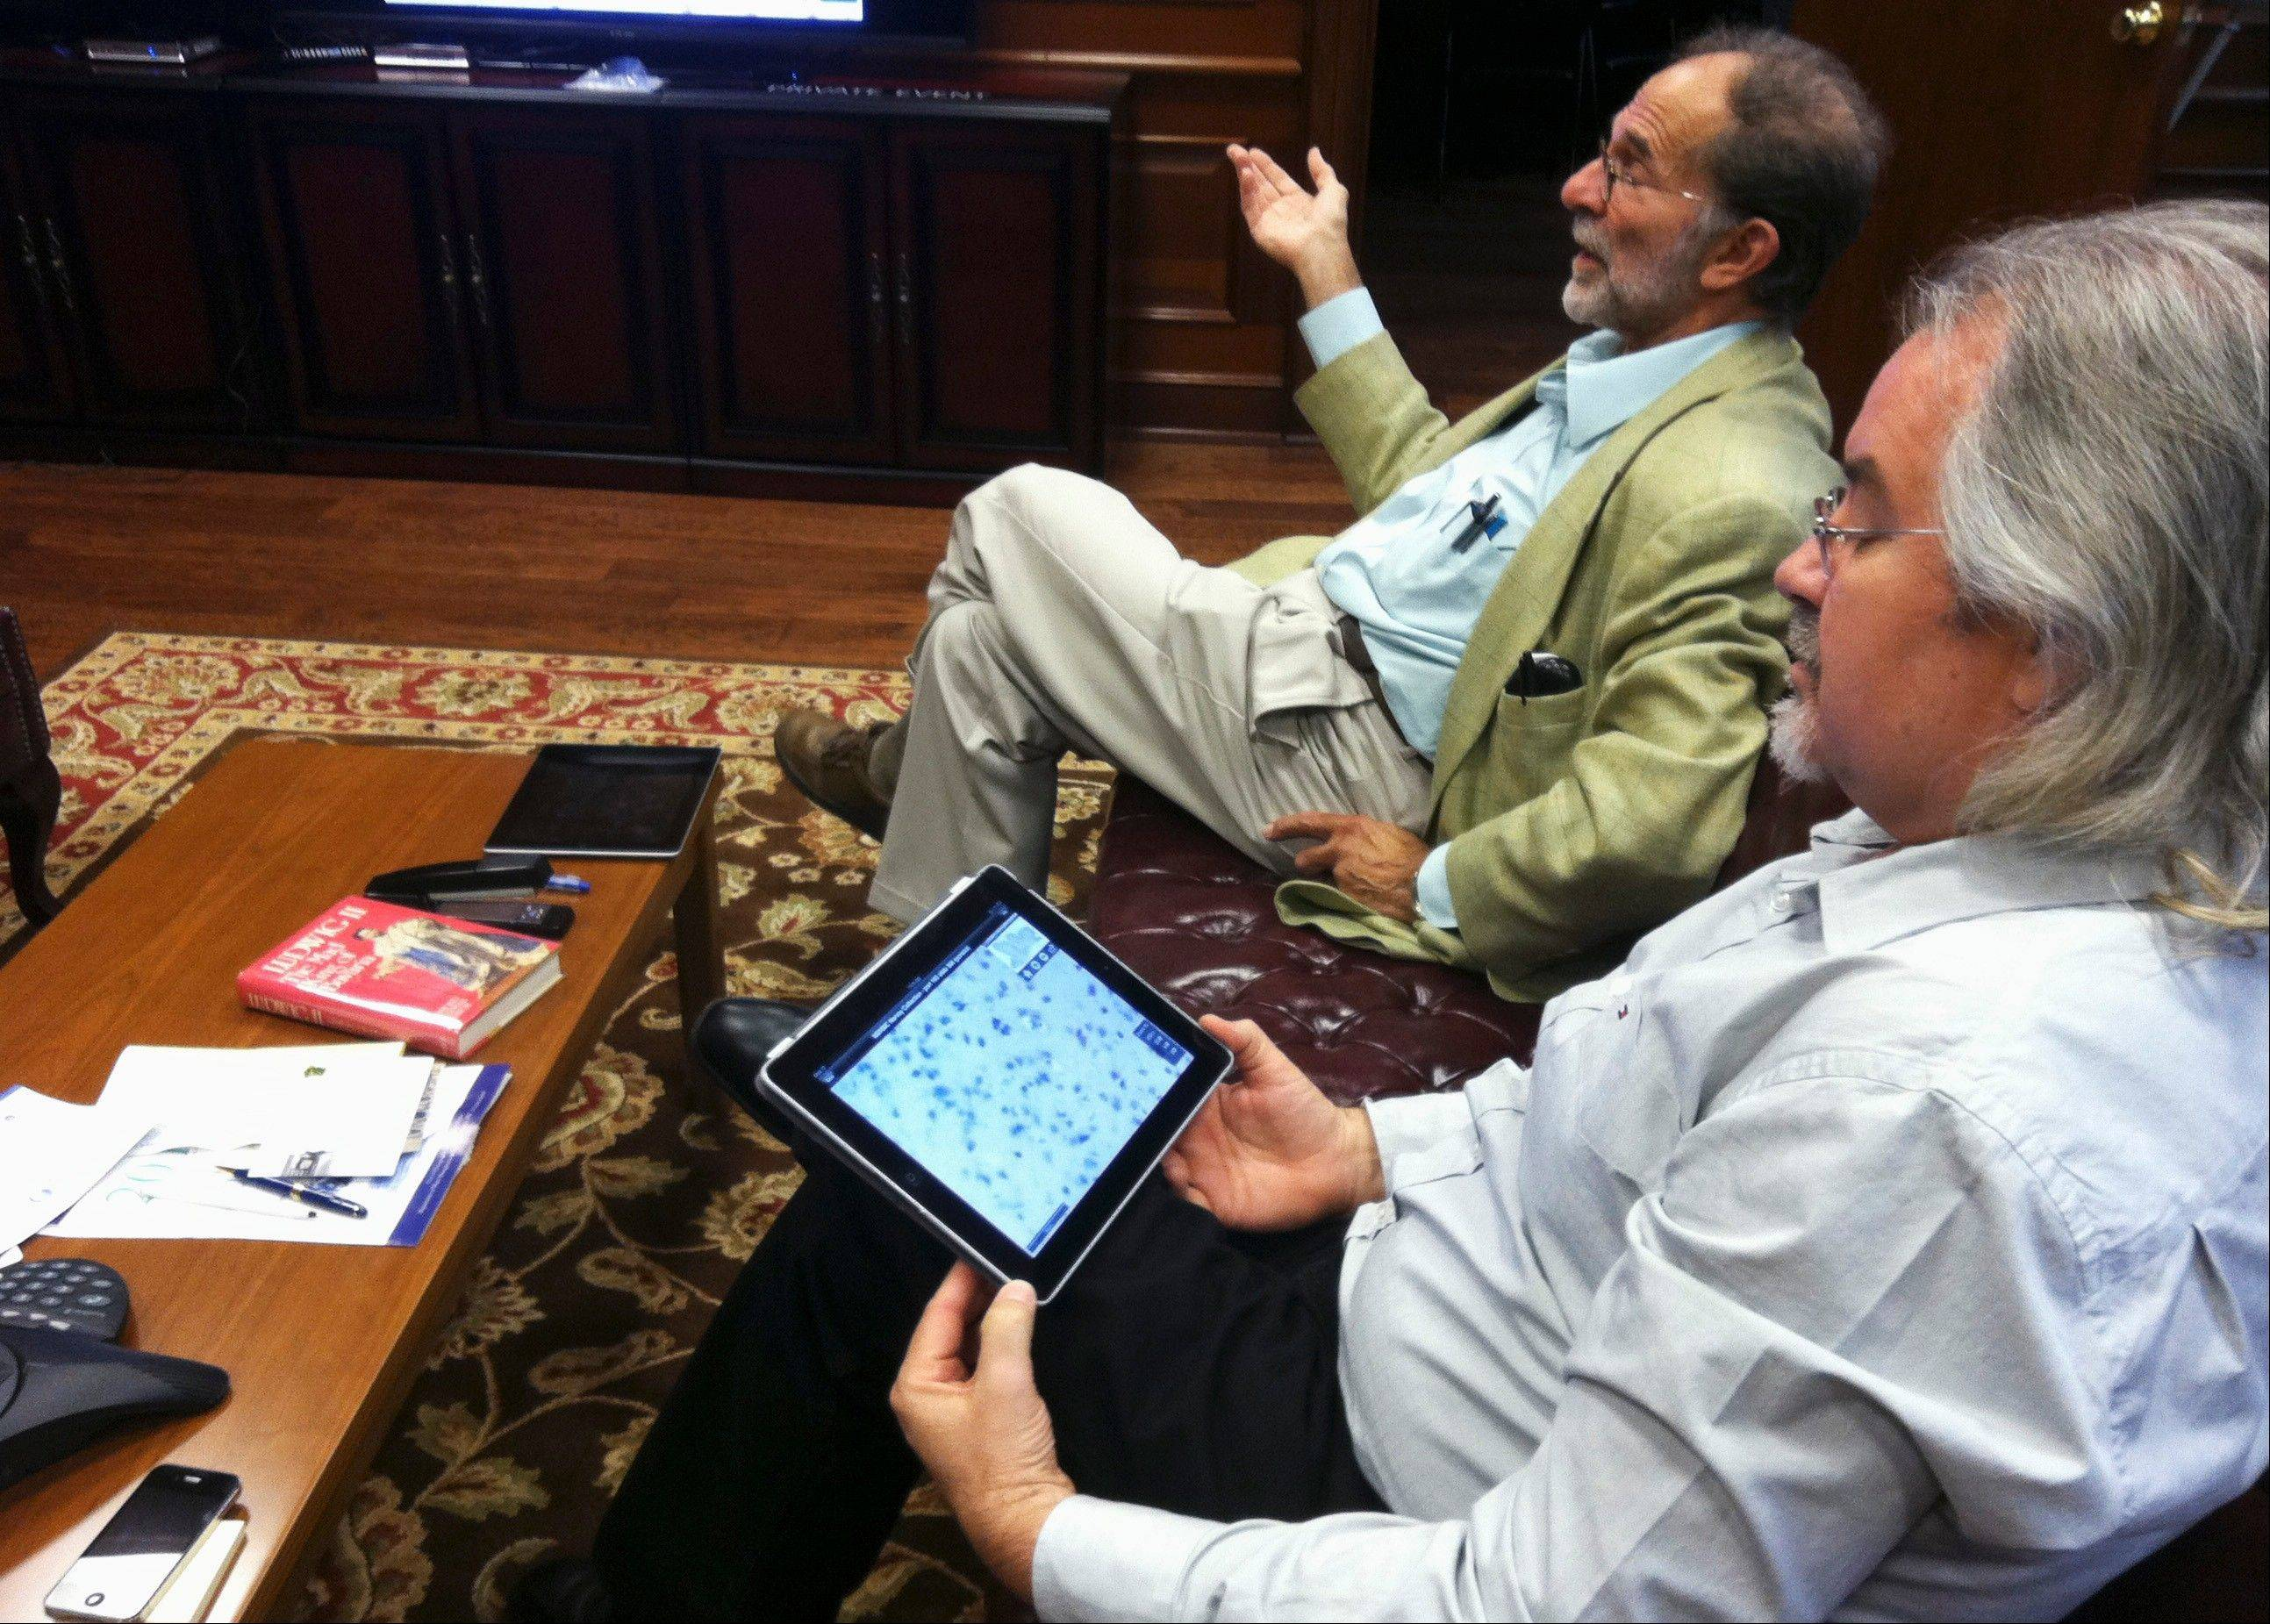 Dr. Phillip Epstein, left, and Steve Landers of the National Museum of Health and Medicine Chicago talk about the new iPad app being released Tuesday